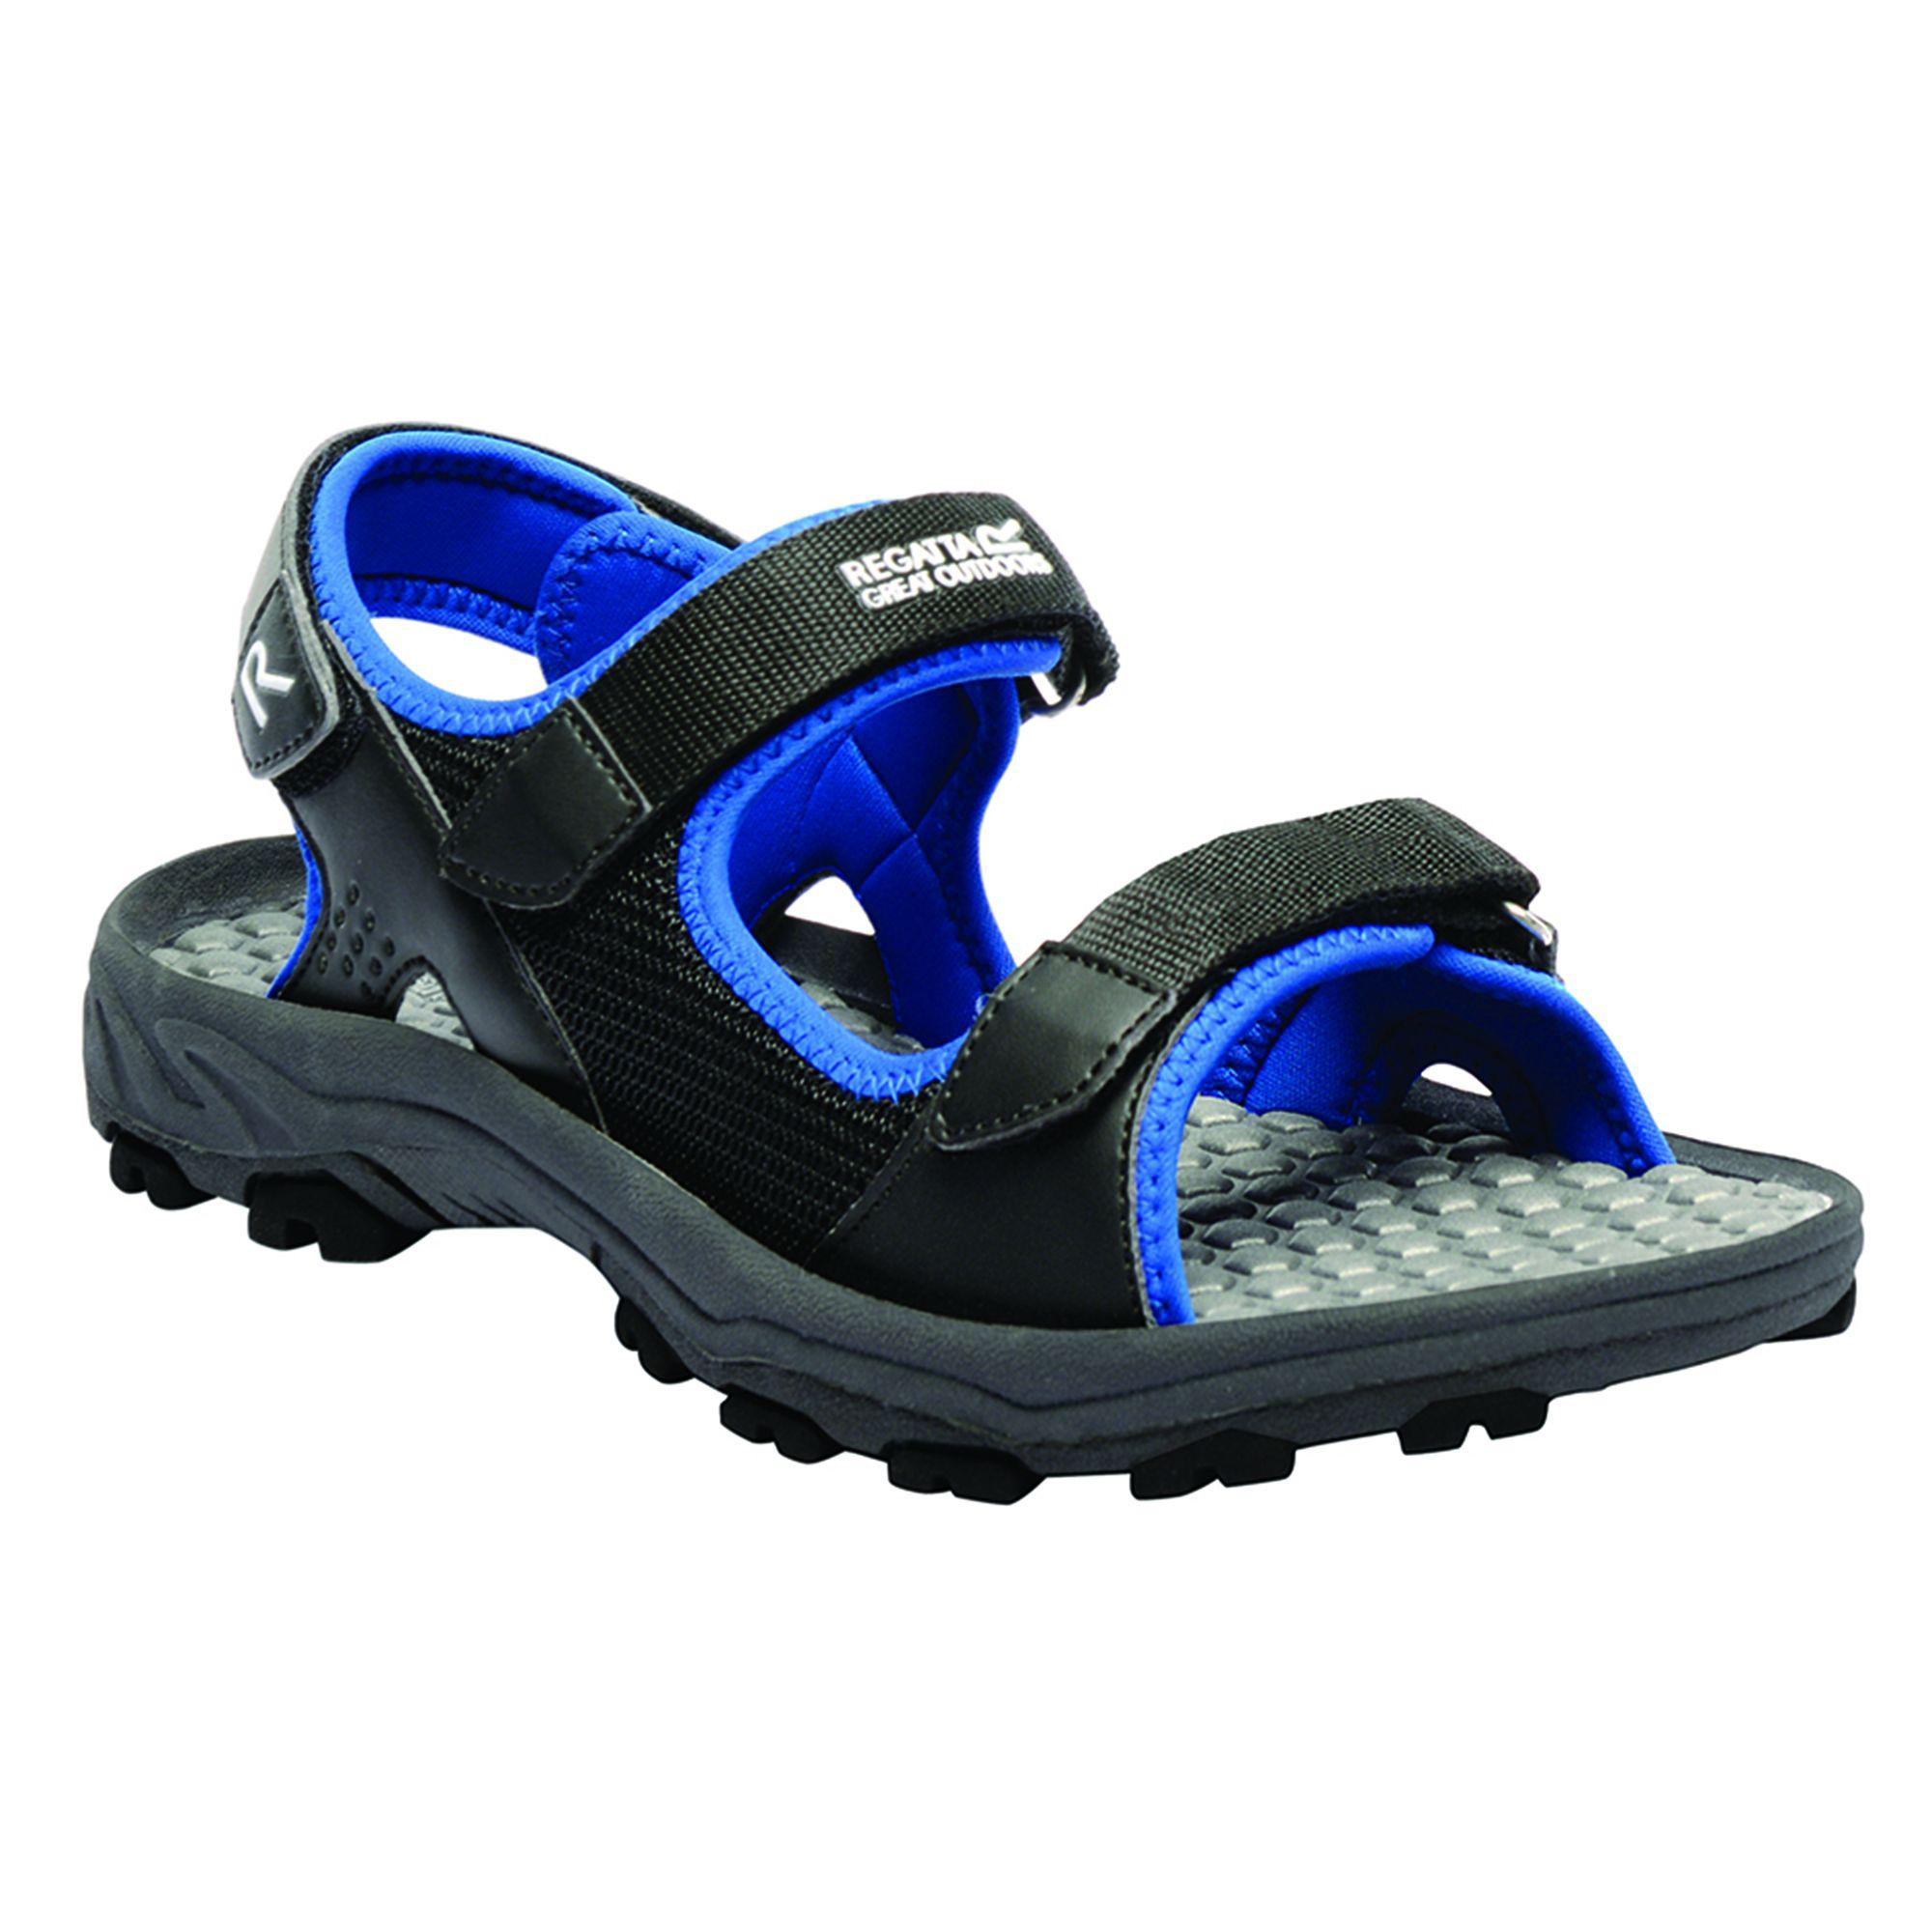 Black Terrarock sandals cheap sale for cheap buy cheap latest collections X3Klrd507